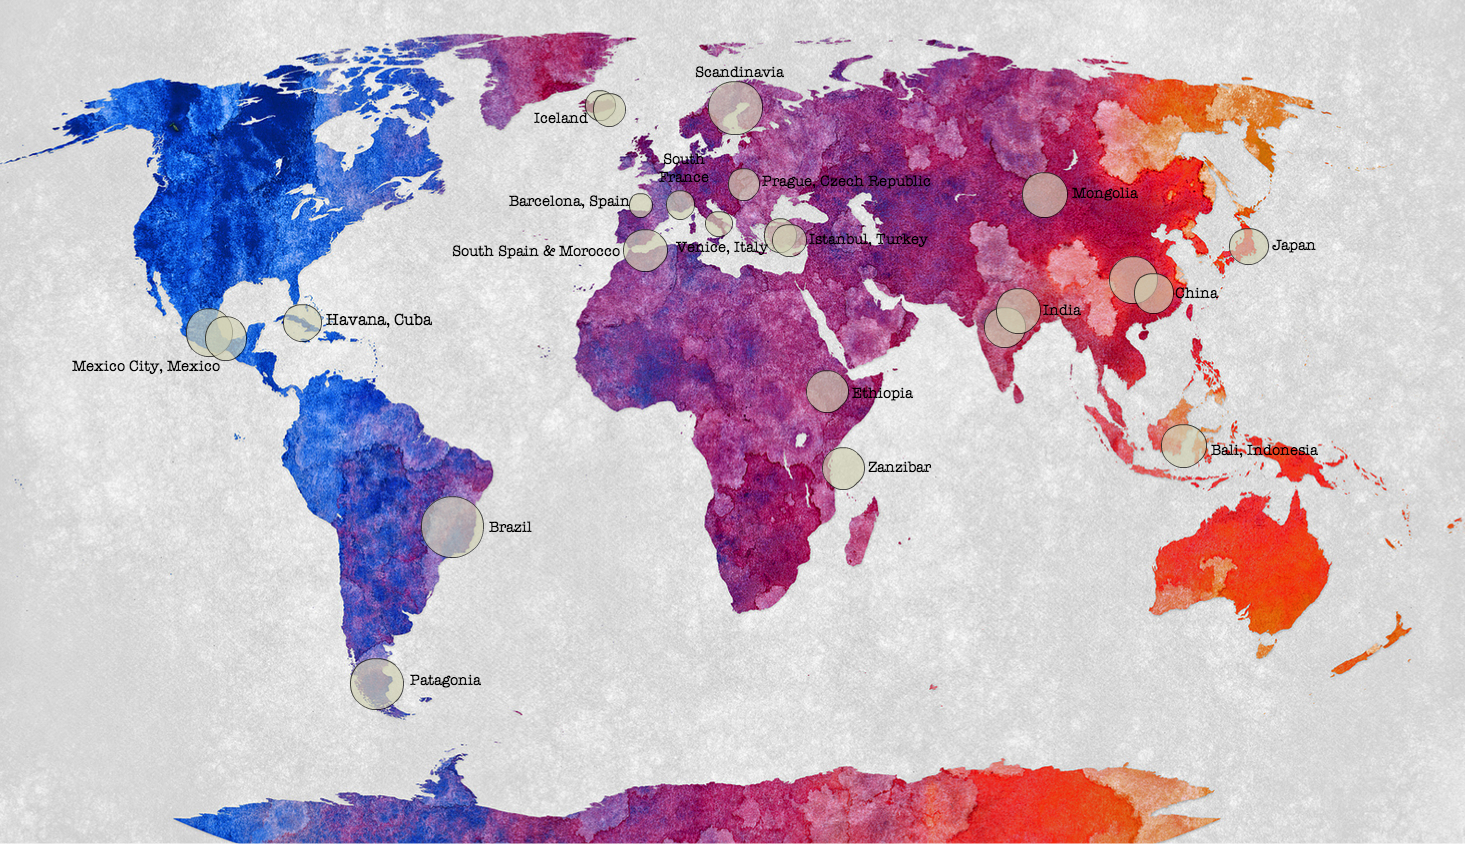 Painted map of the world, art, travel, art destinations